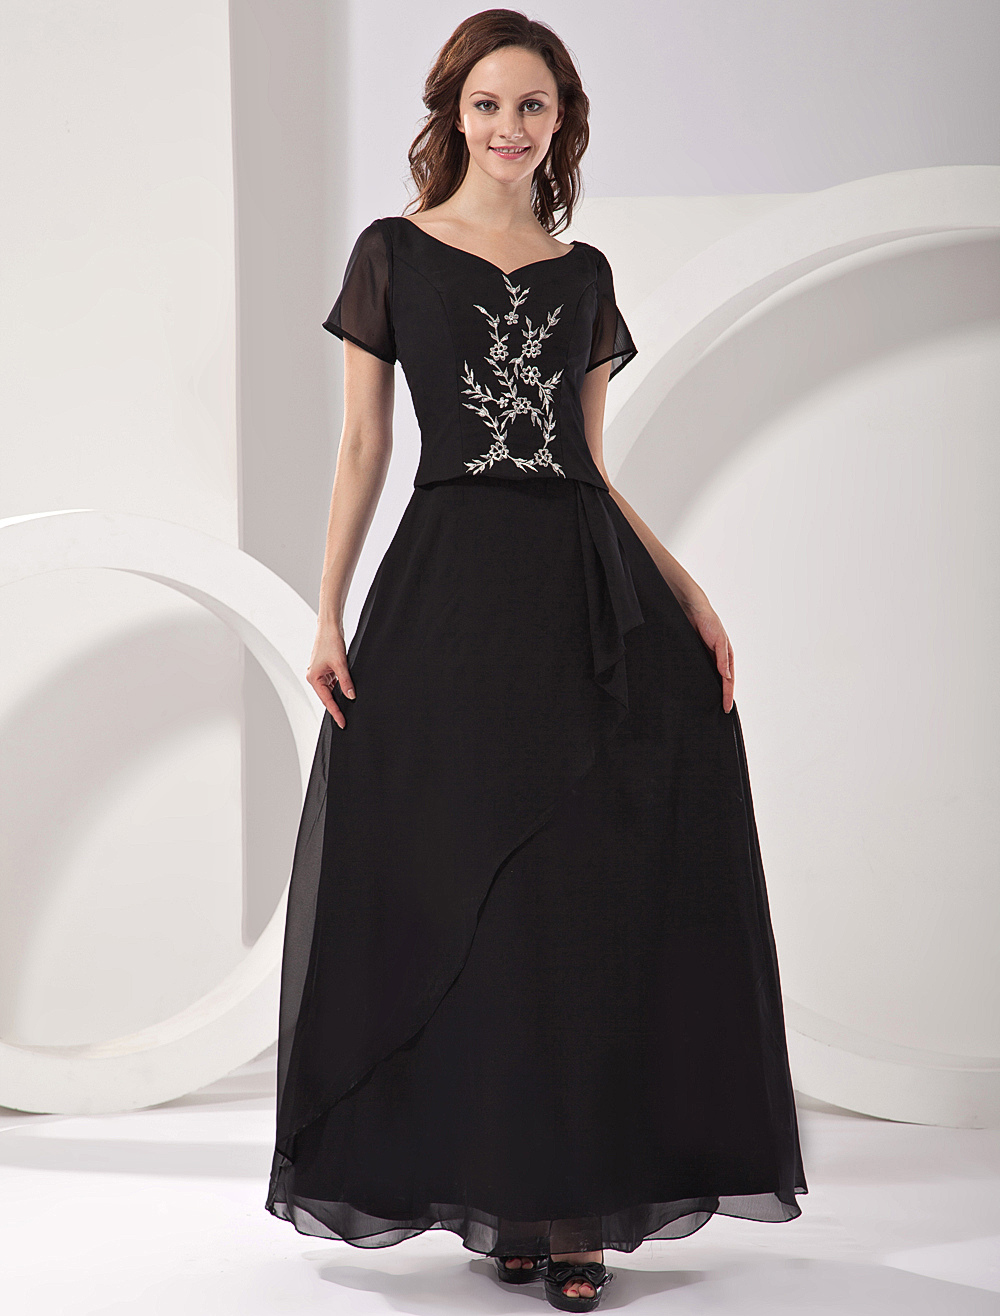 Buy Fashion Black A-line Jewel Neck Short Sleeves Fashion Dress For Mother of the Bride for $104.39 in Milanoo store